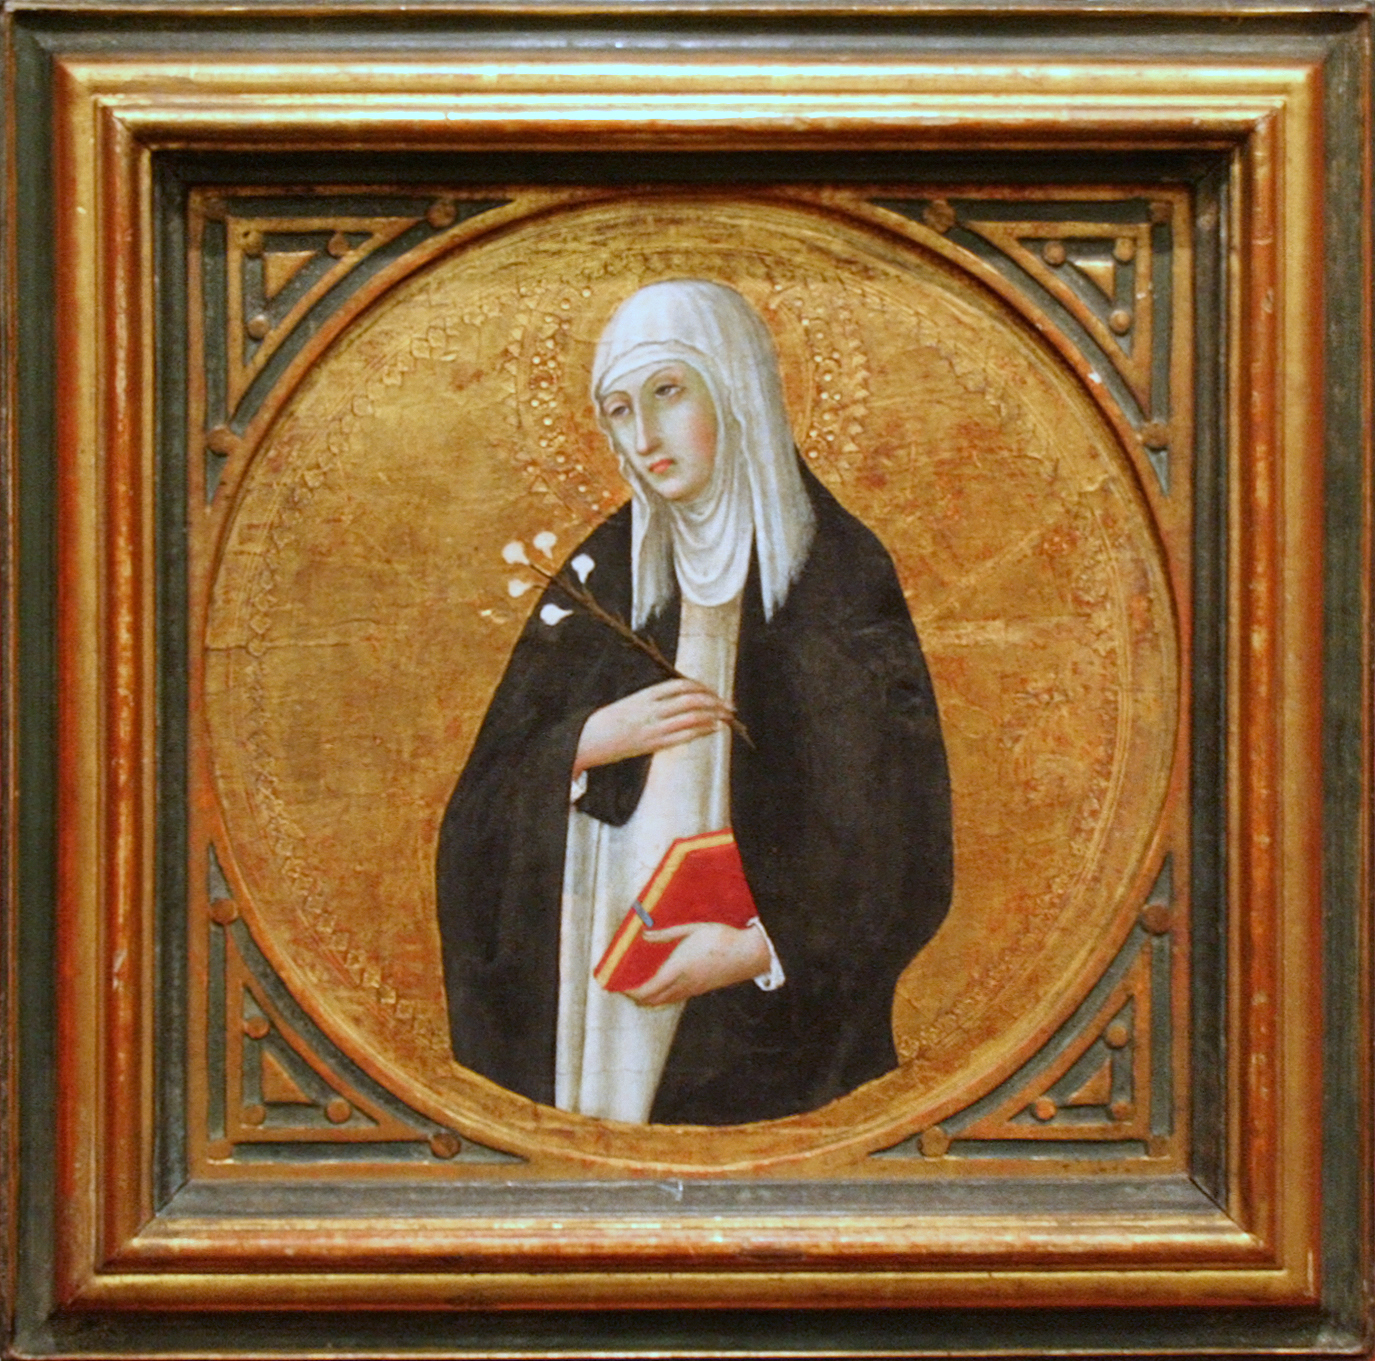 https://upload.wikimedia.org/wikipedia/commons/a/af/Sano_di_Pietro_-_Heilige_Catharina_van_Siena.JPG